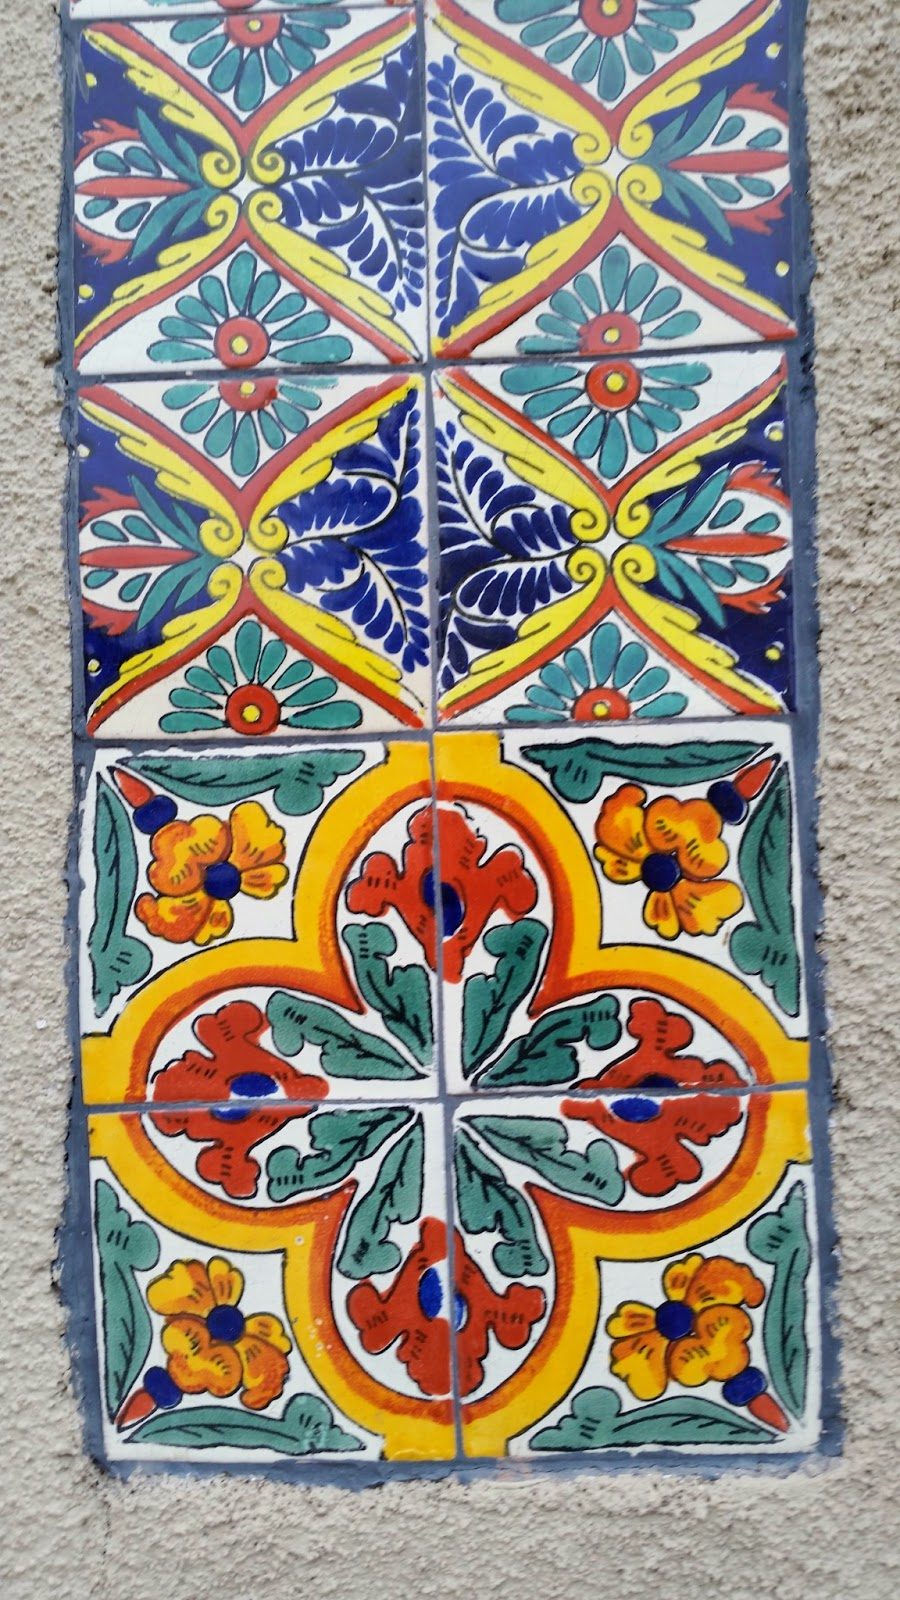 Decorative Tiles in this historic installation match a pattern Avente sells today.